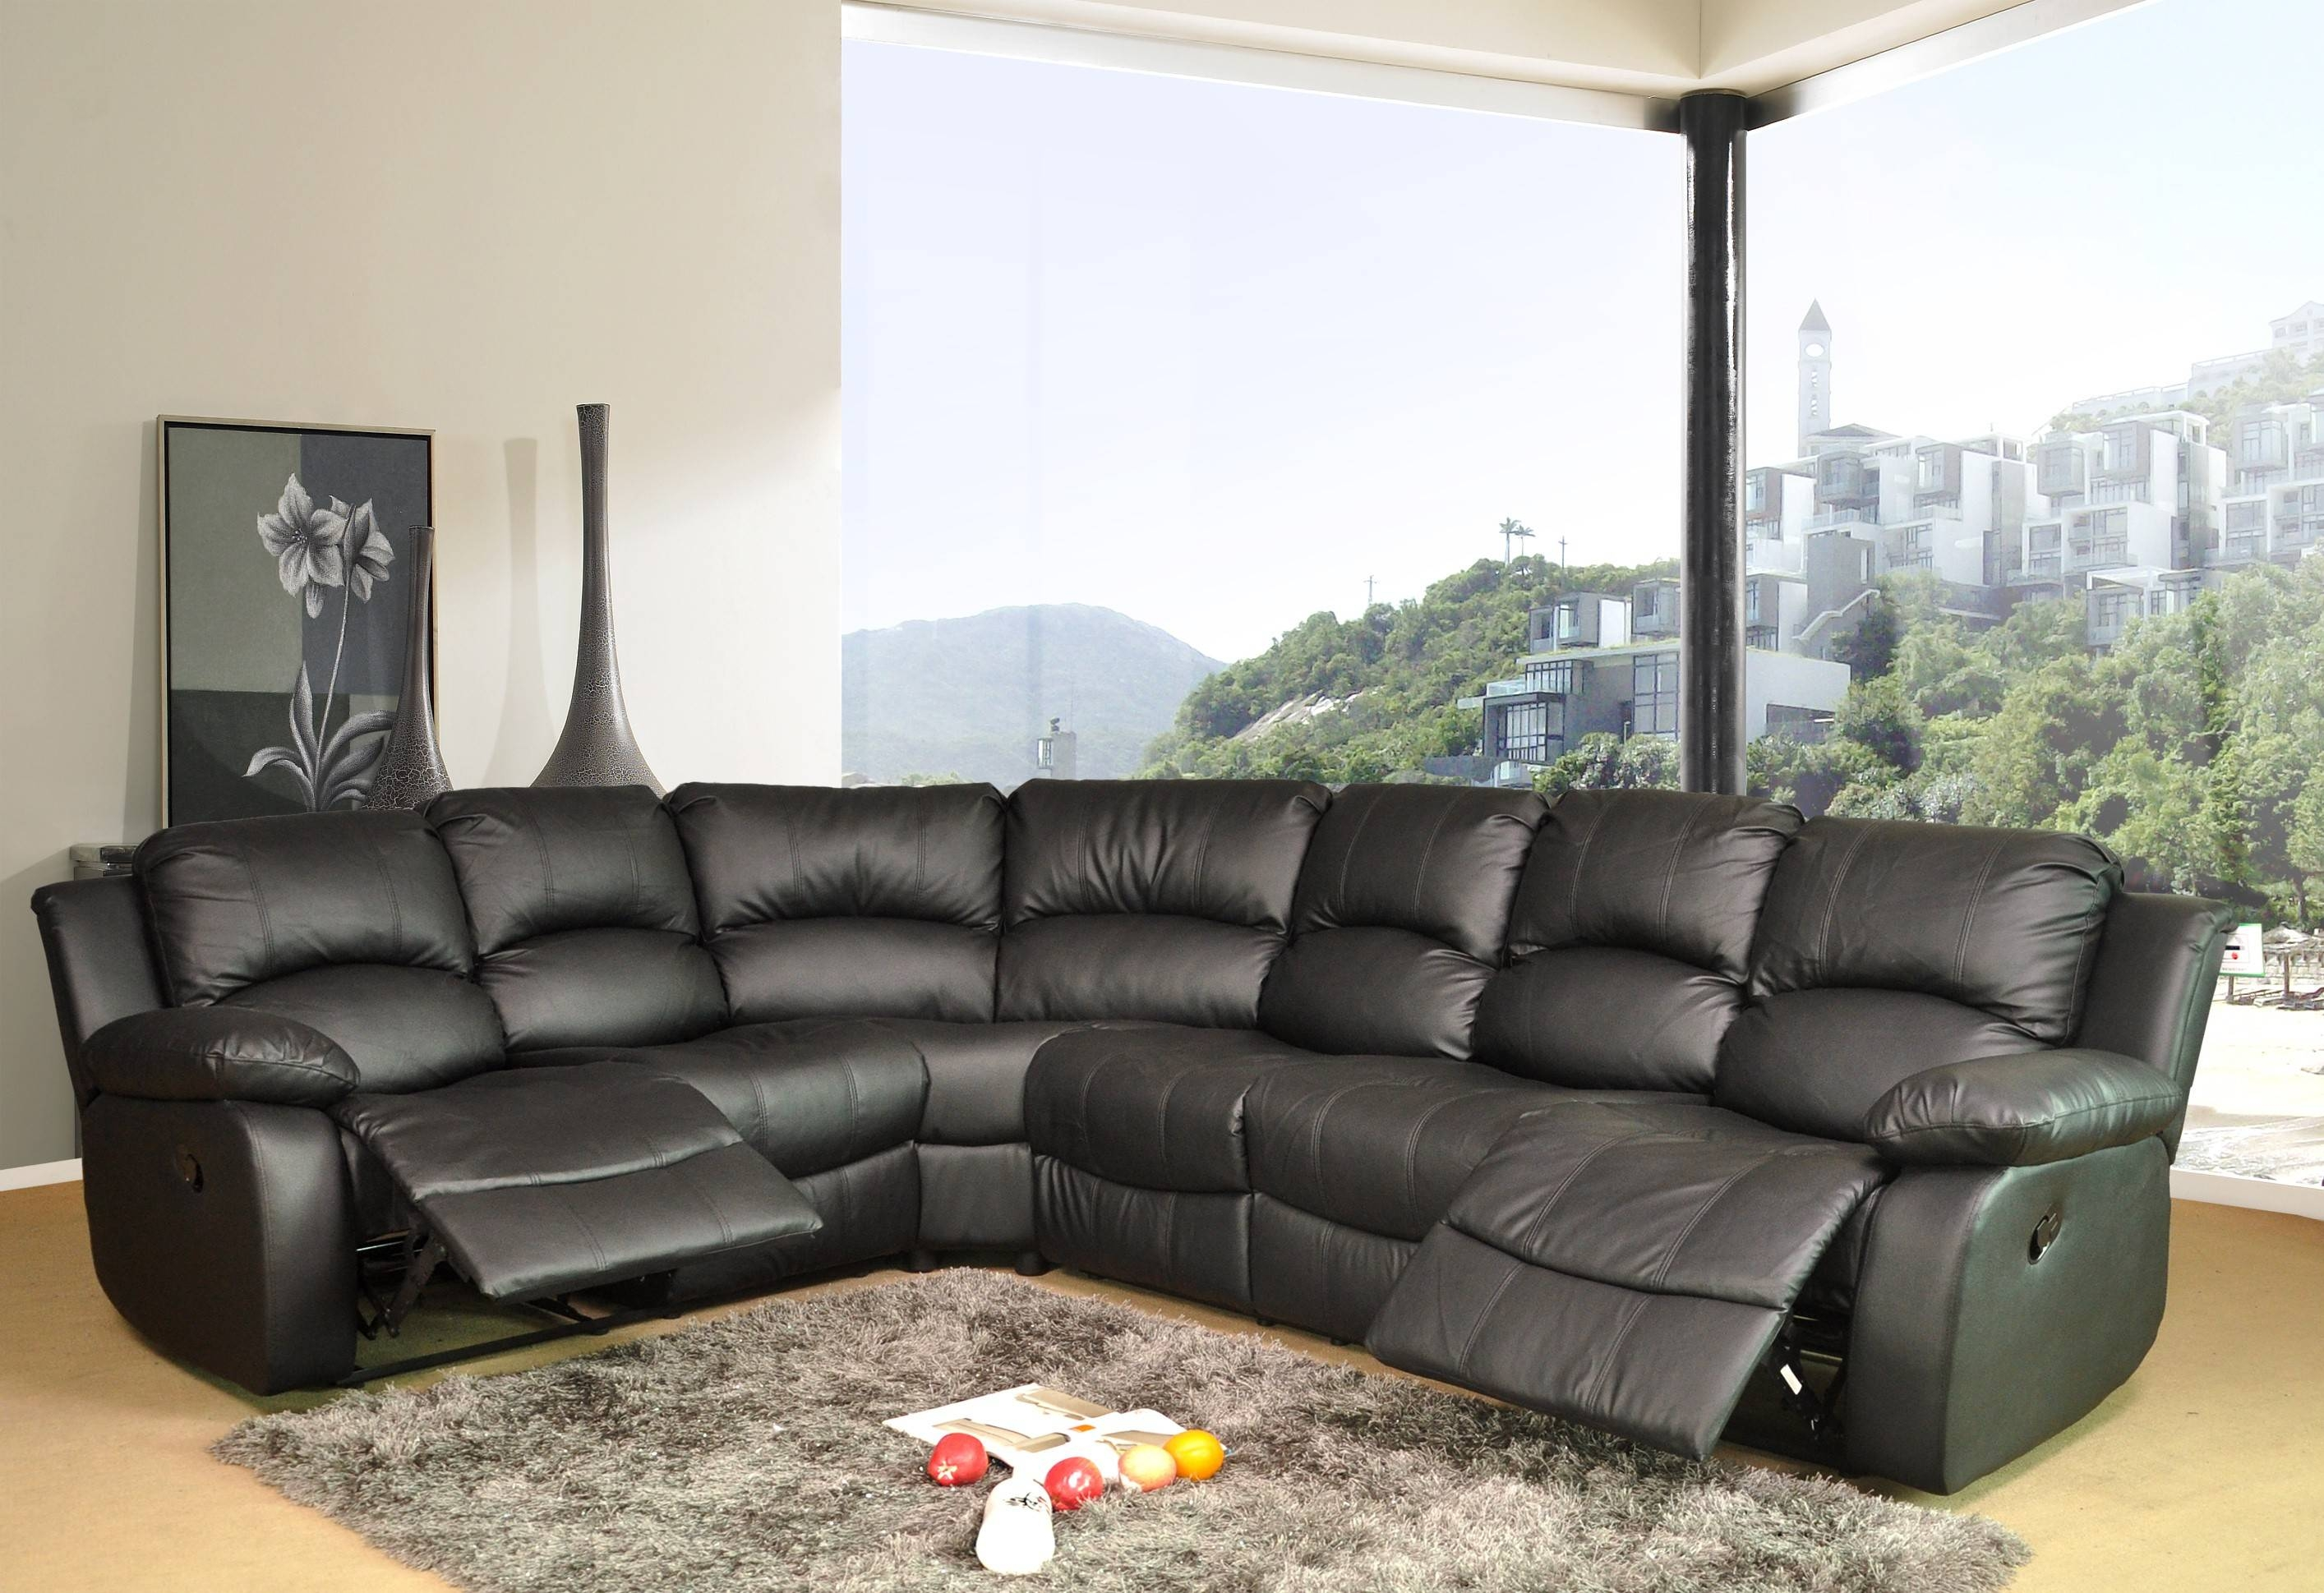 Corner Sofas With Recliners | Tehranmix Decoration inside Large Black Leather Corner Sofas (Image 6 of 30)